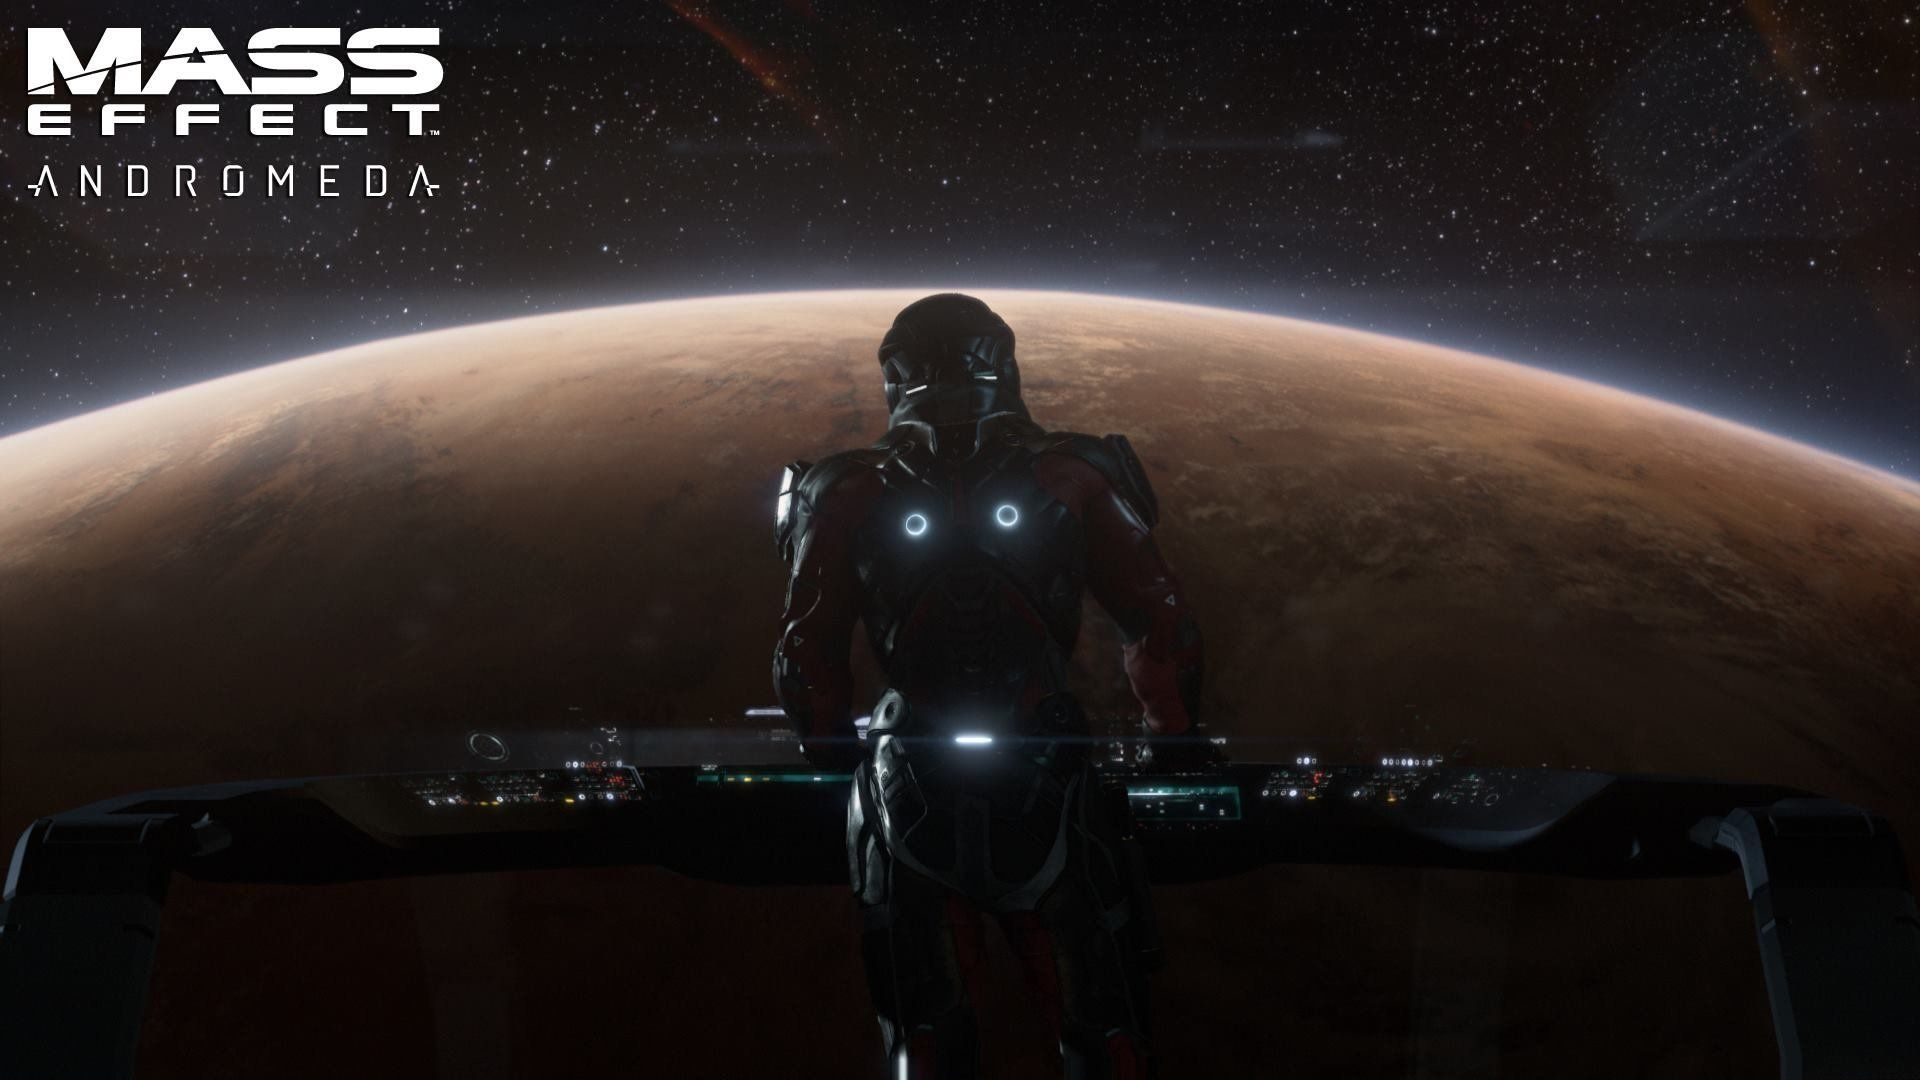 1920x1080 Mass Effect Andromeda Wallpaper Background Image View